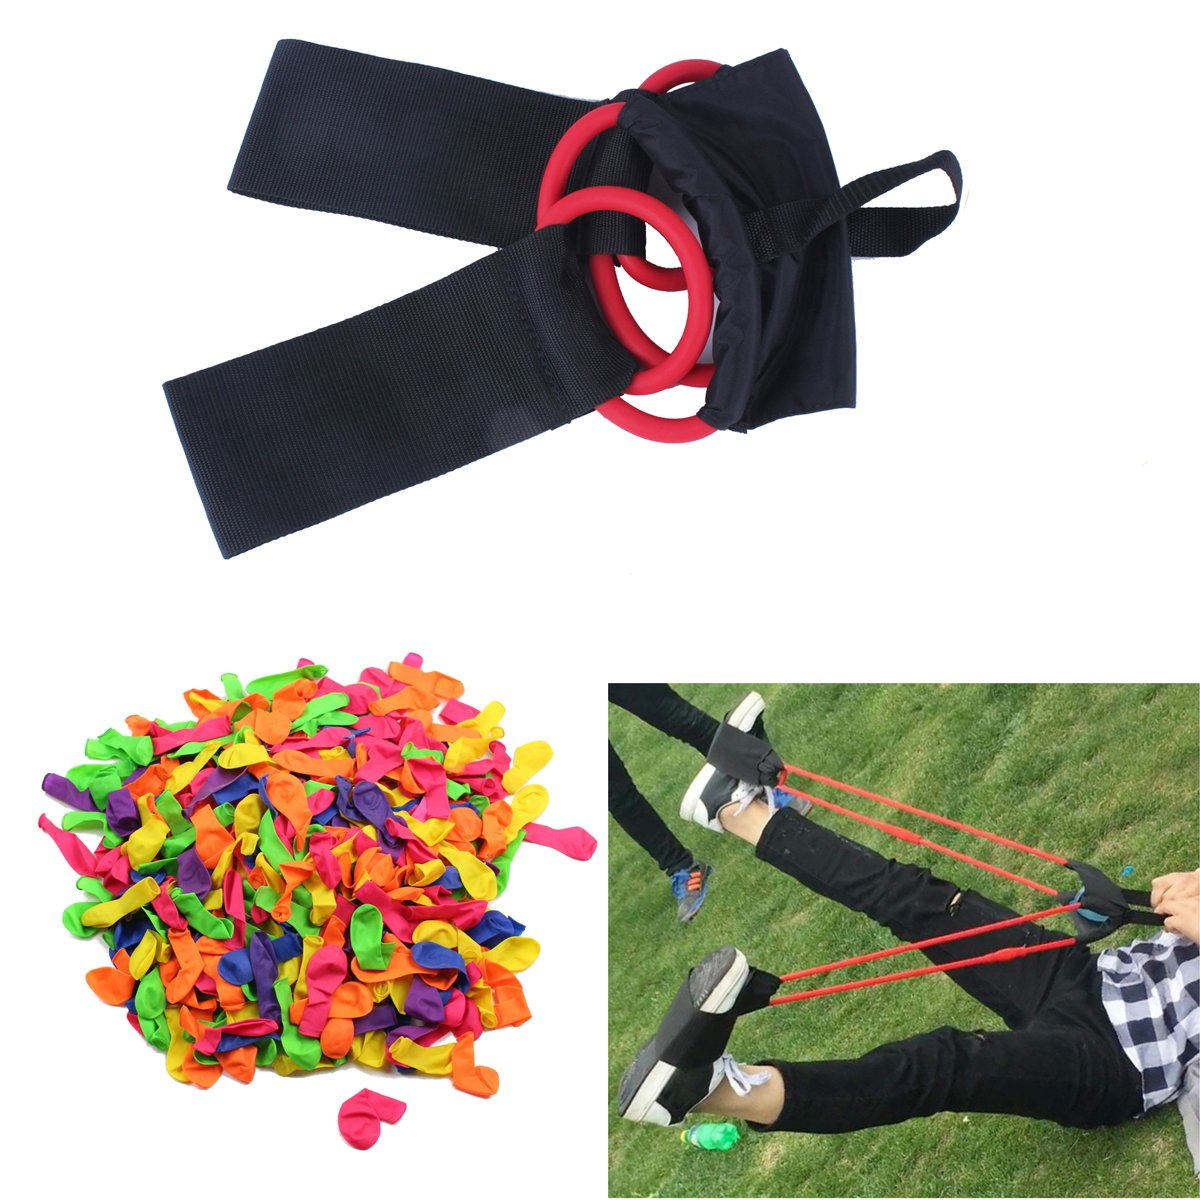 SinoArt Water Balloon Launcher 1 or 3 Person Balloon Slingshot INCLUDED 500 Balloons by SinoArt